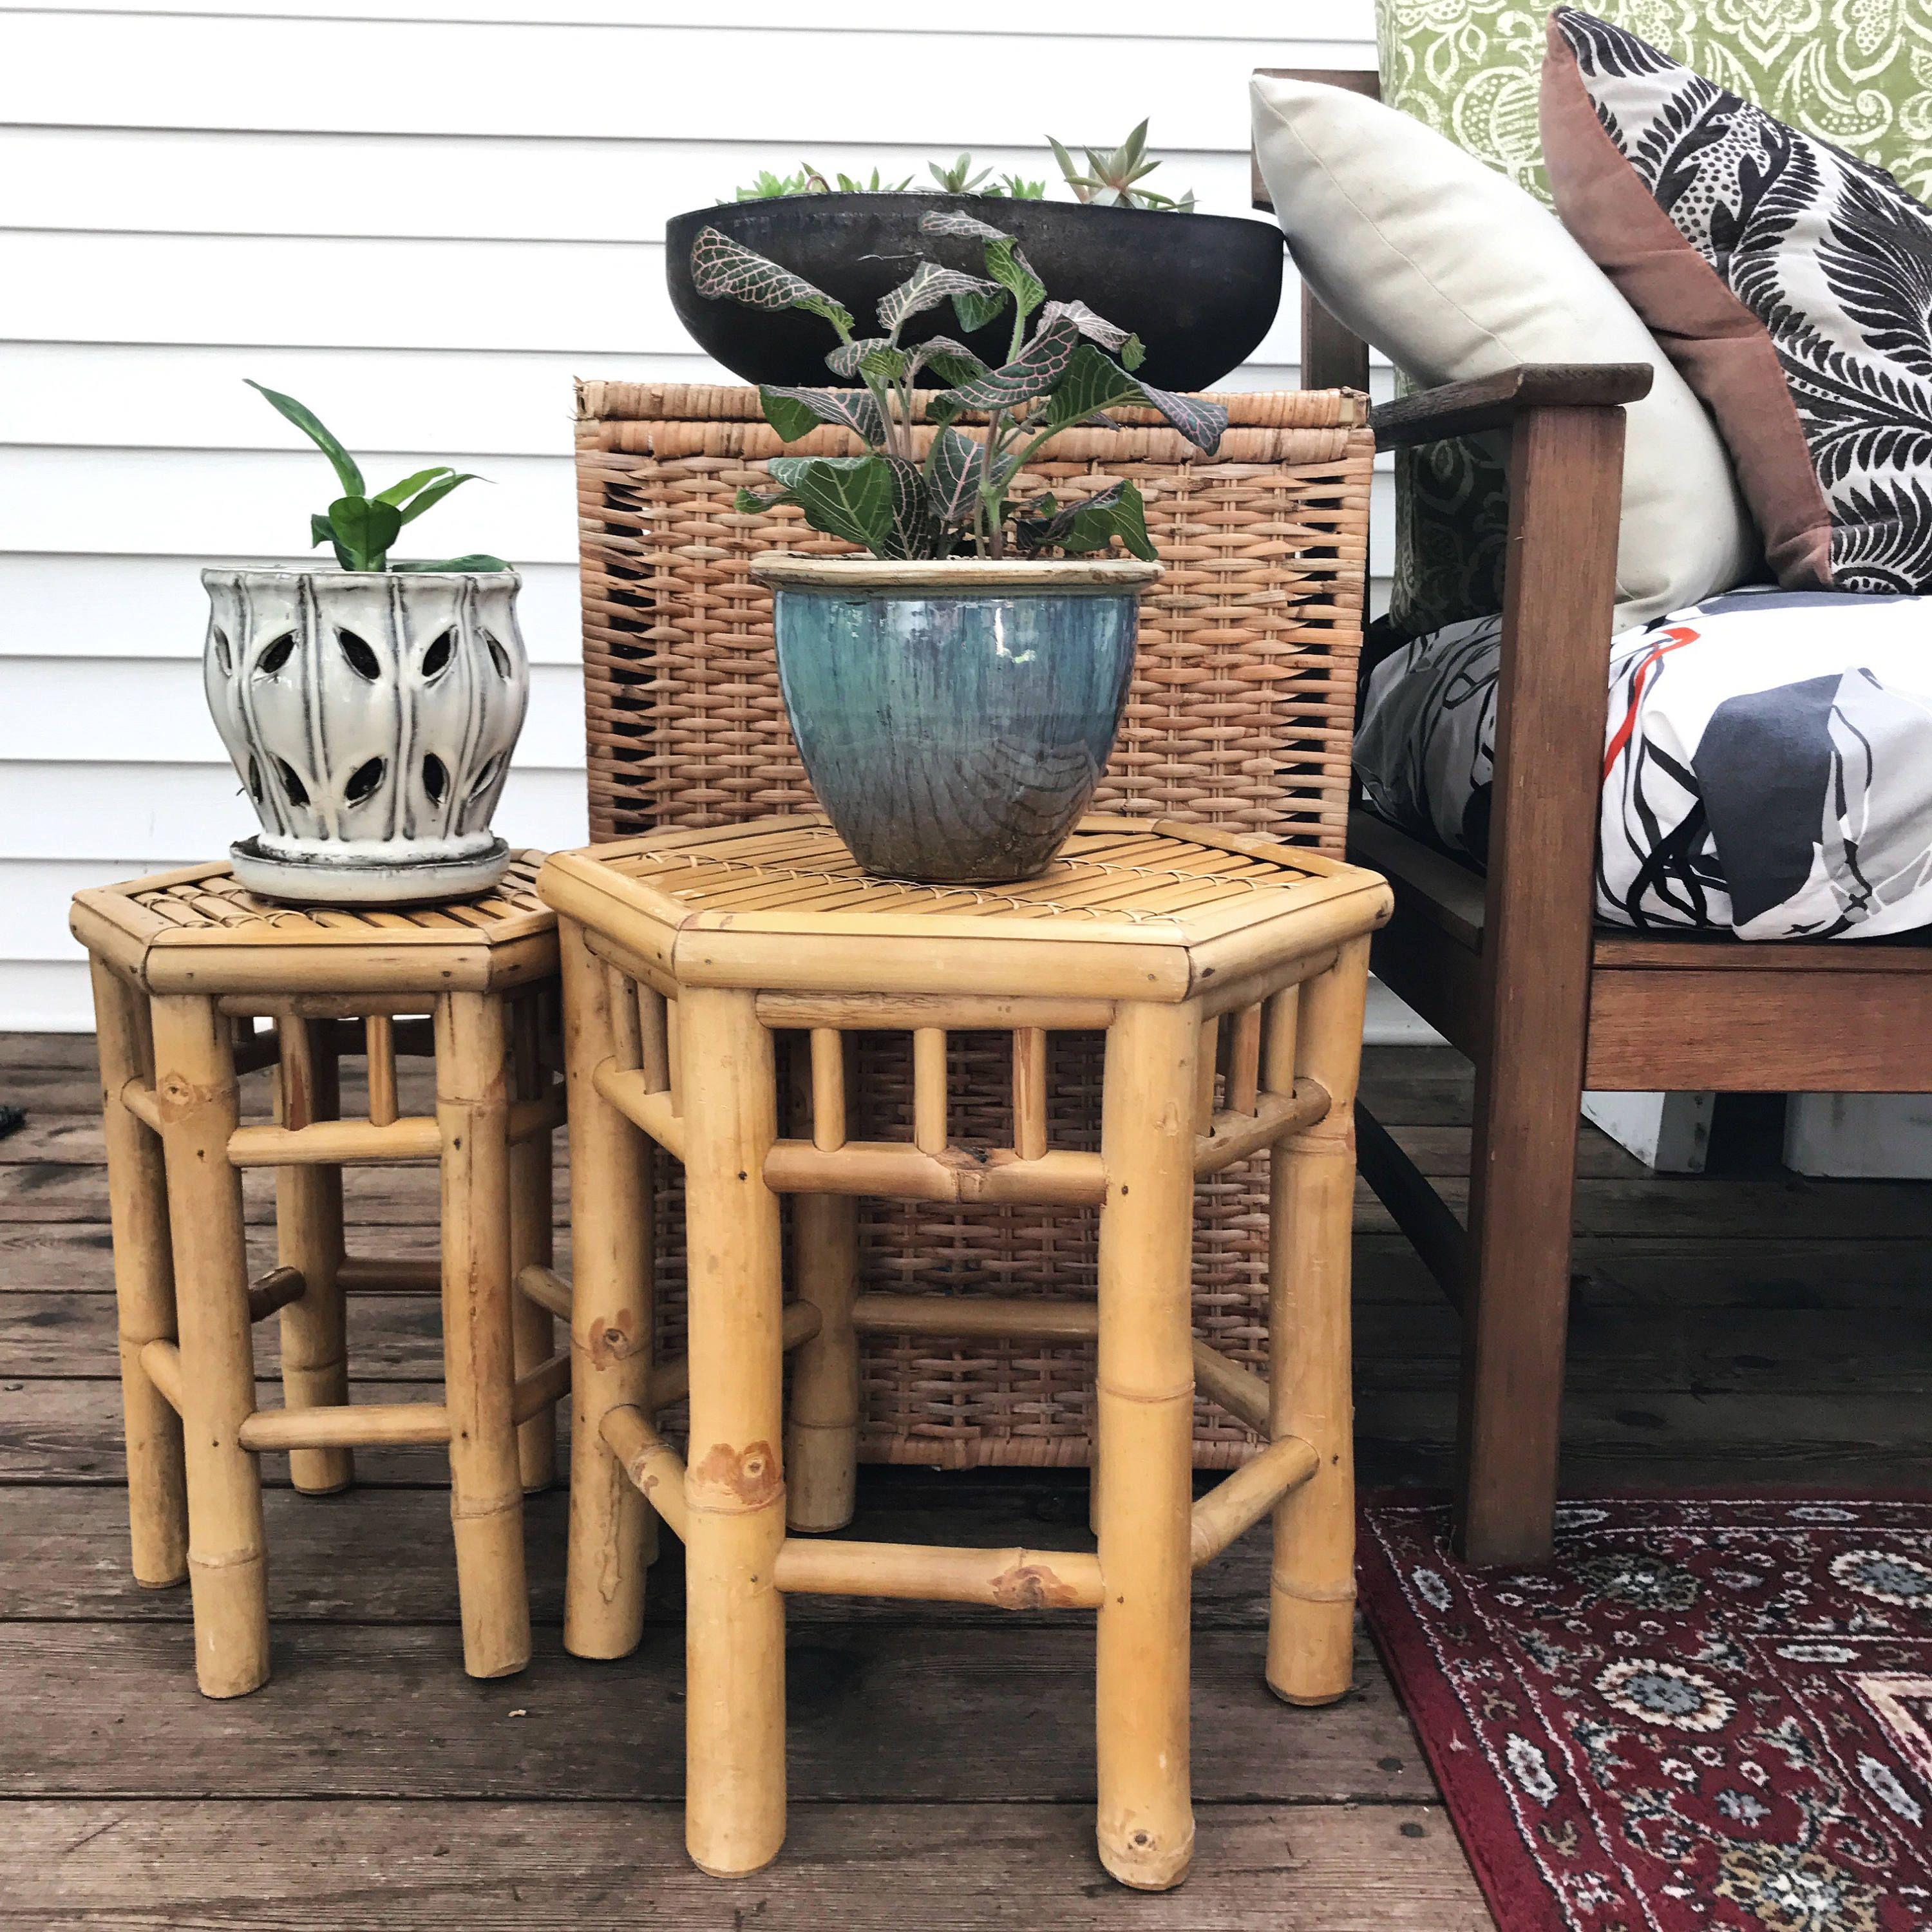 Superb Vintage Bamboo Plant Stand Octagon Rattan Side End Table Download Free Architecture Designs Scobabritishbridgeorg